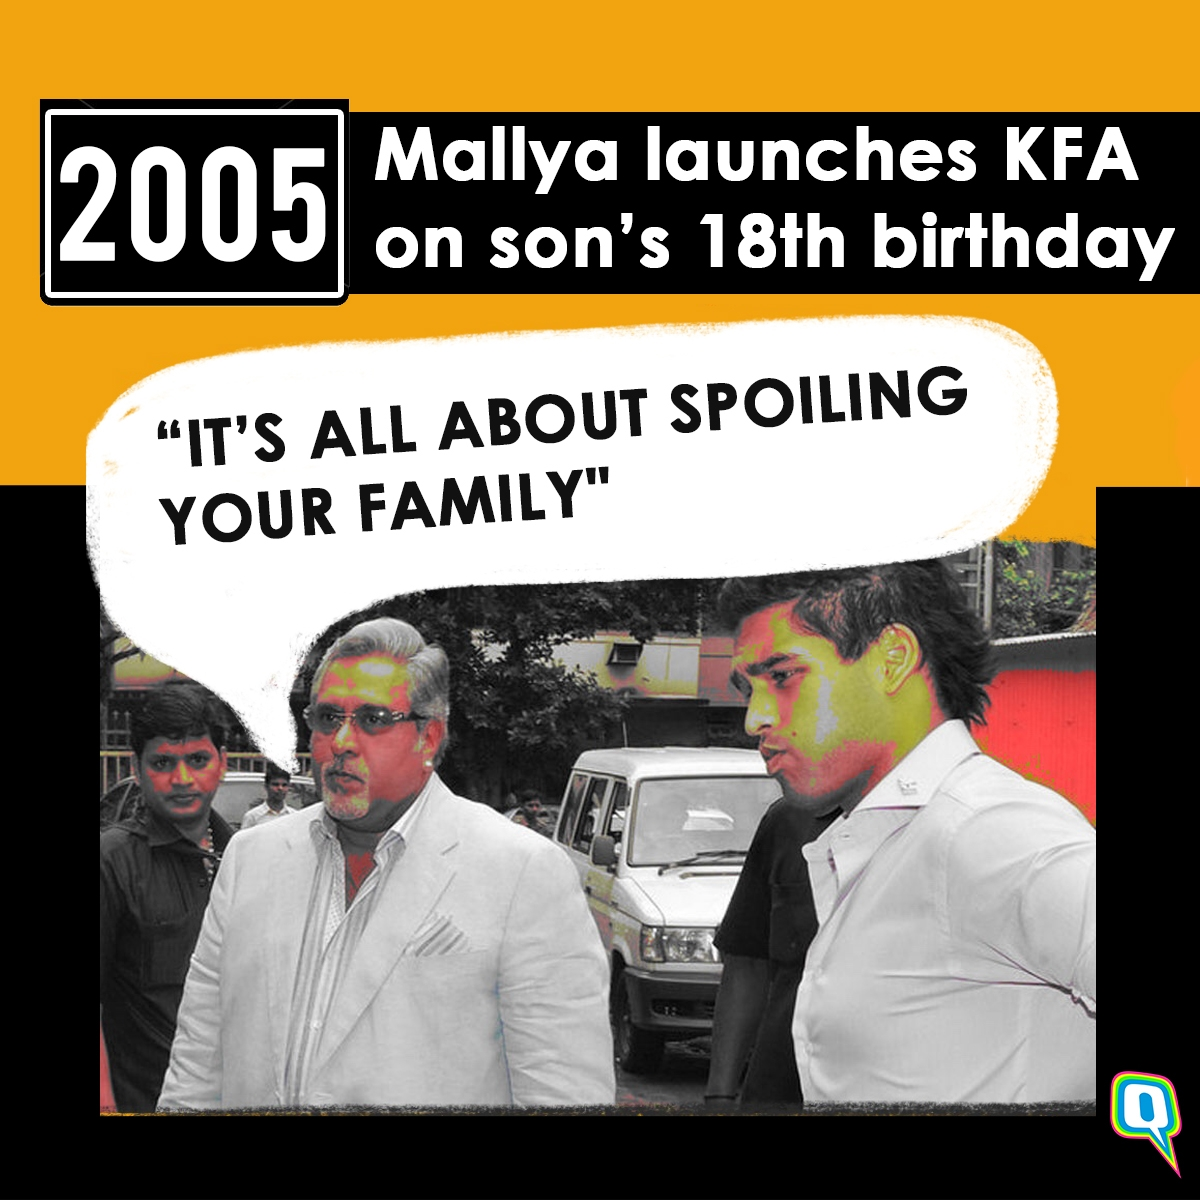 Extradition Is Coming: How Mallya Lost His Crown of Good Times